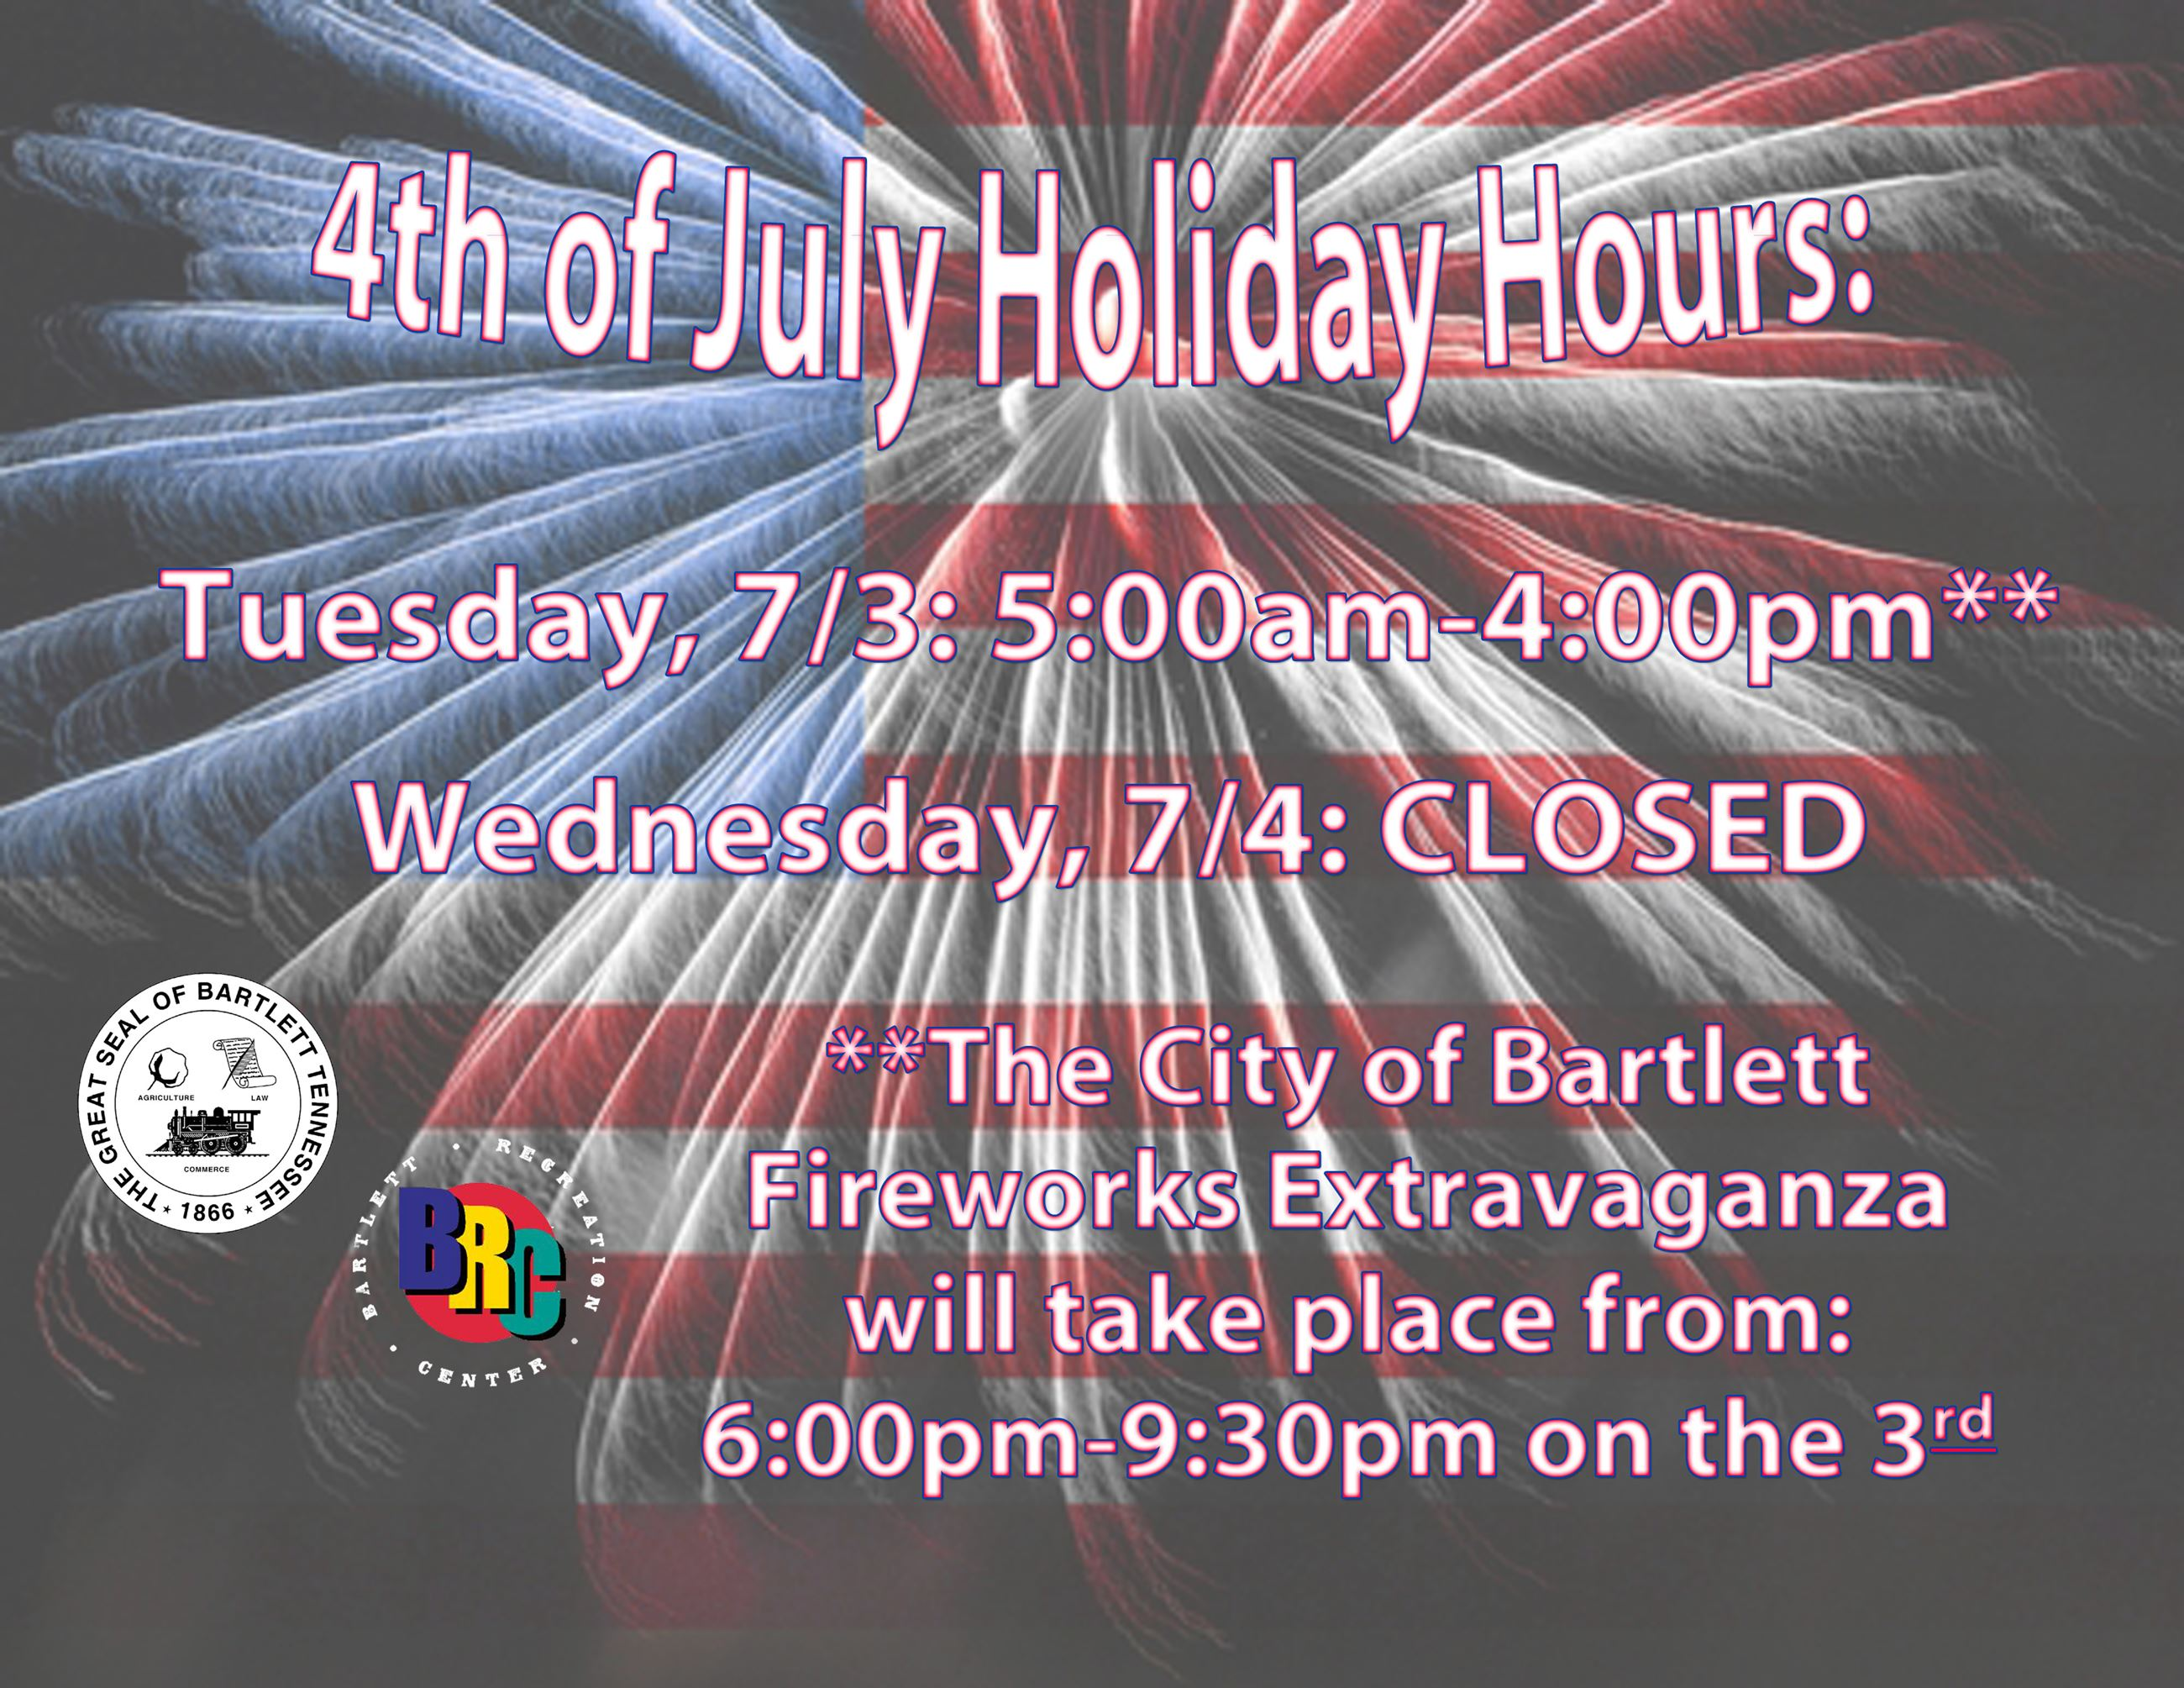 BRC Holiday Hours 4th of July